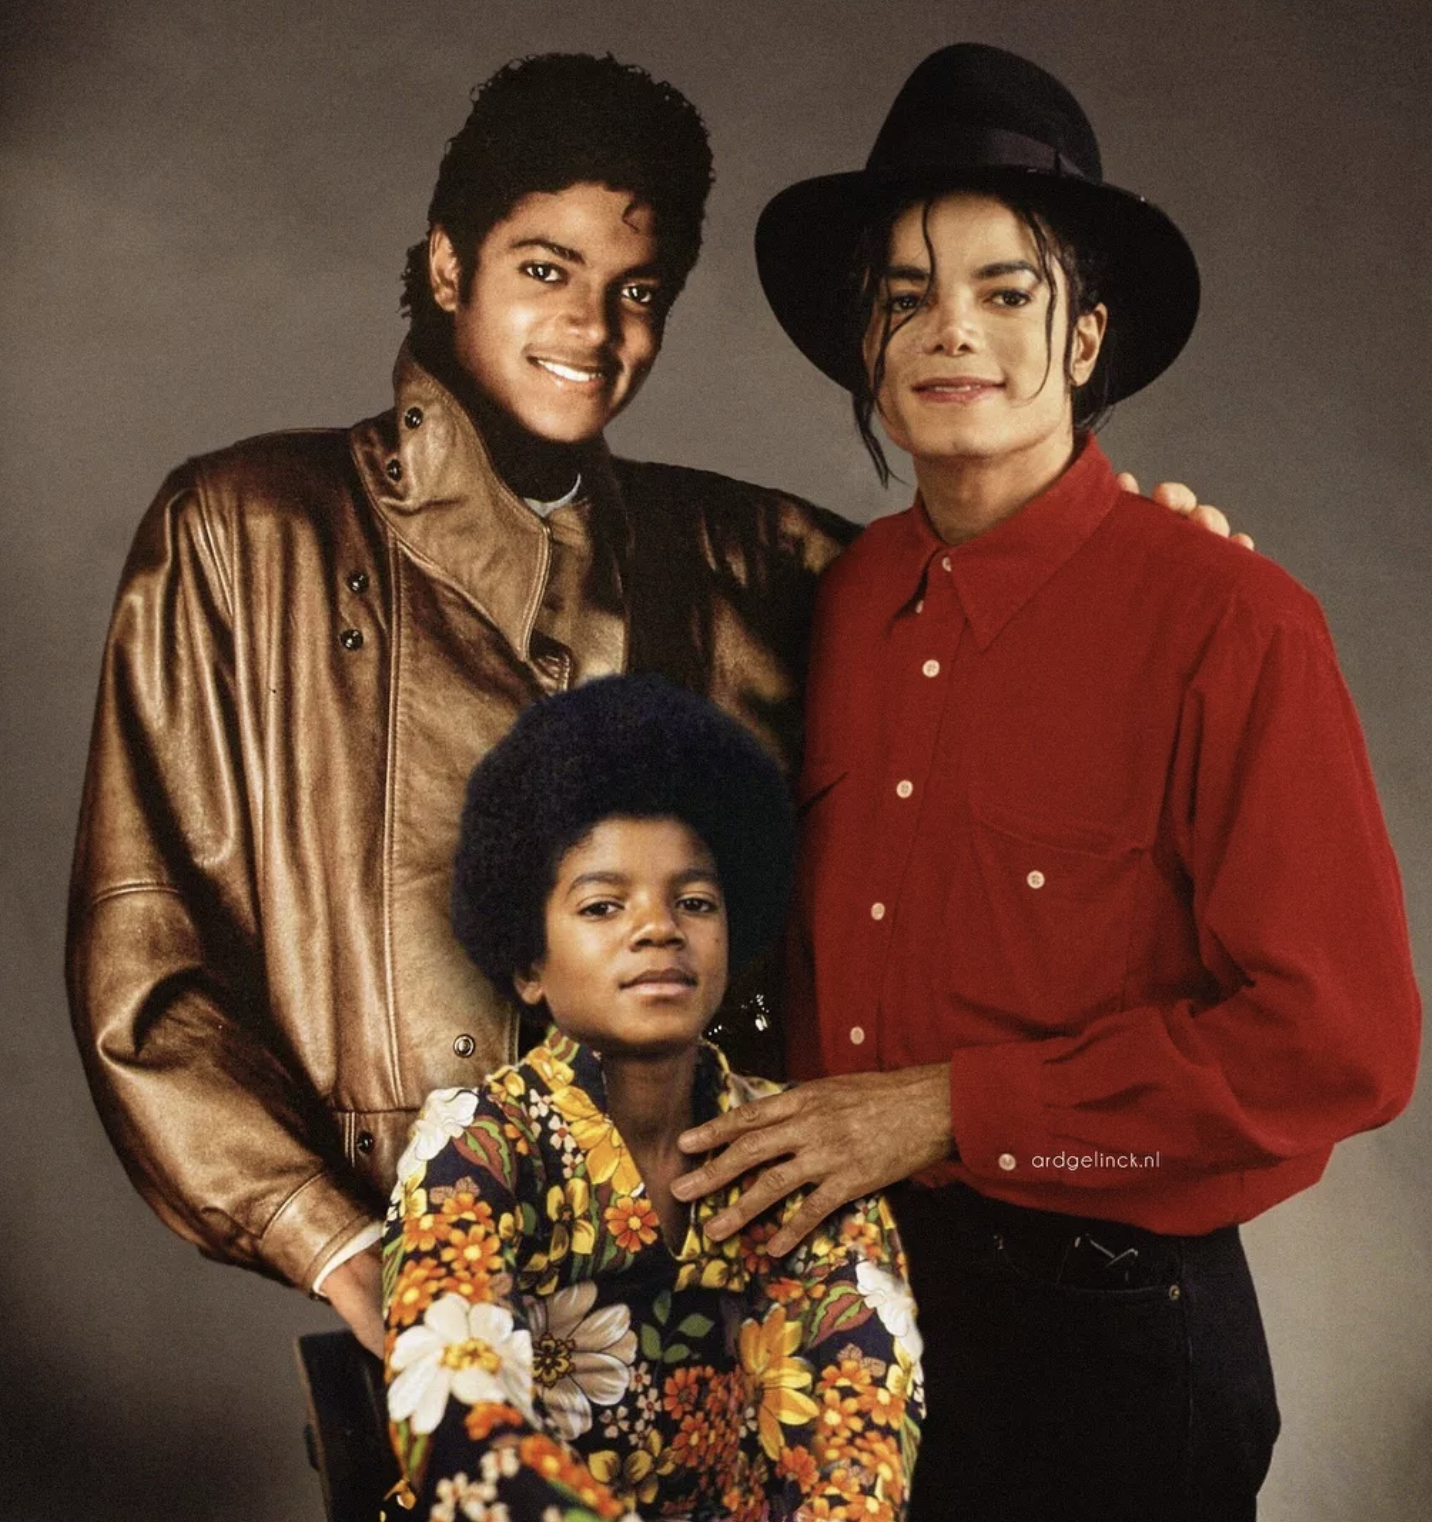 celeb with younger selves - michael jackson